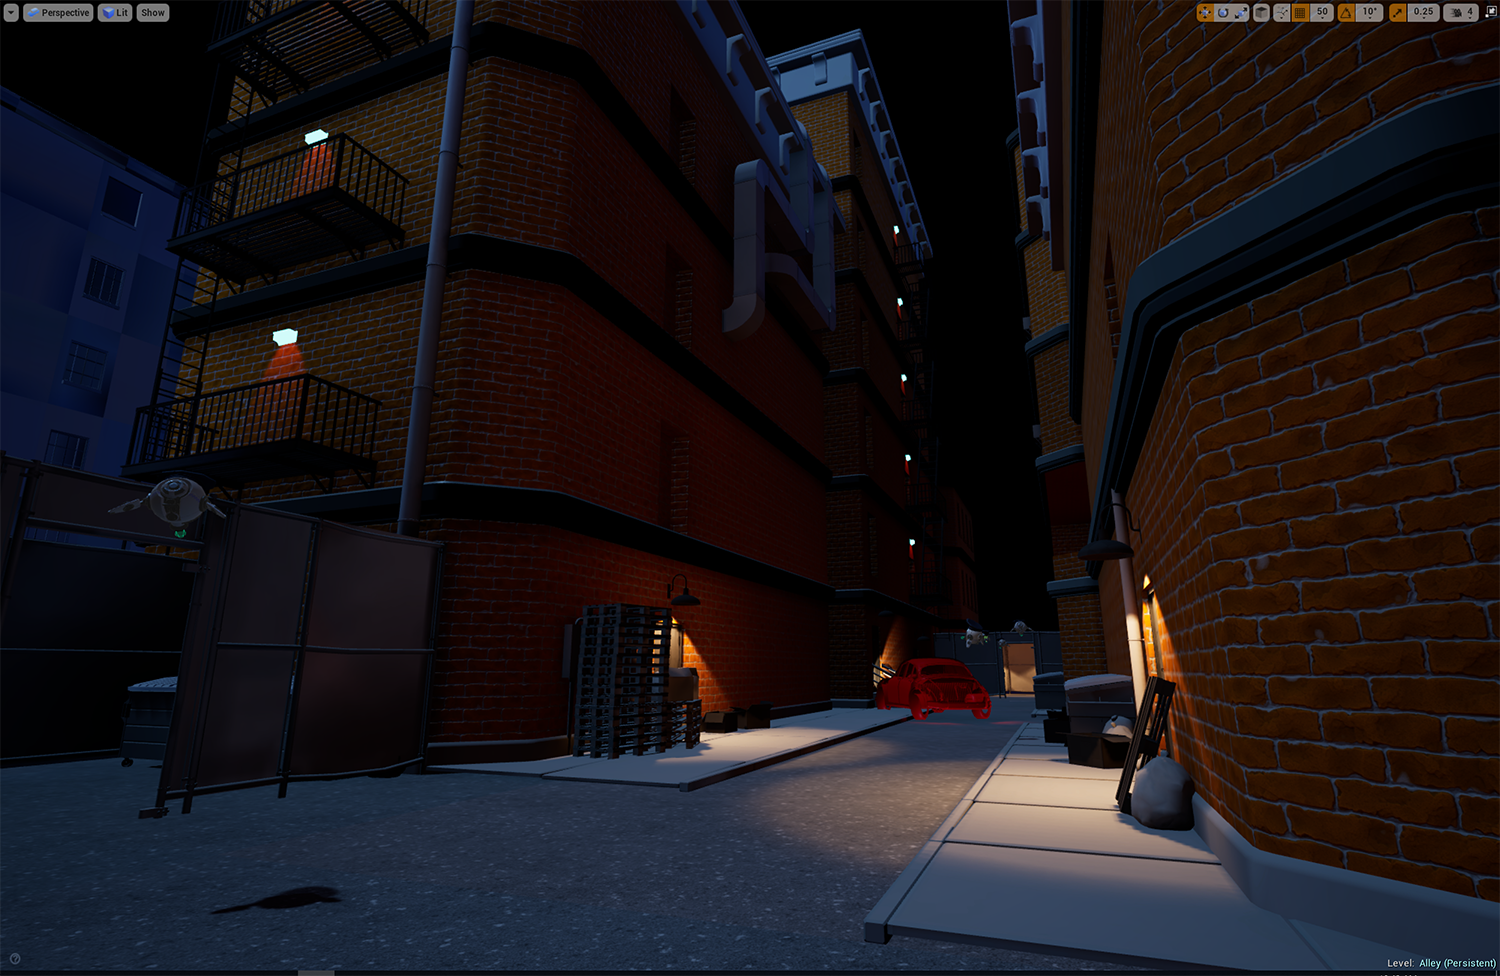 Alley wip 01